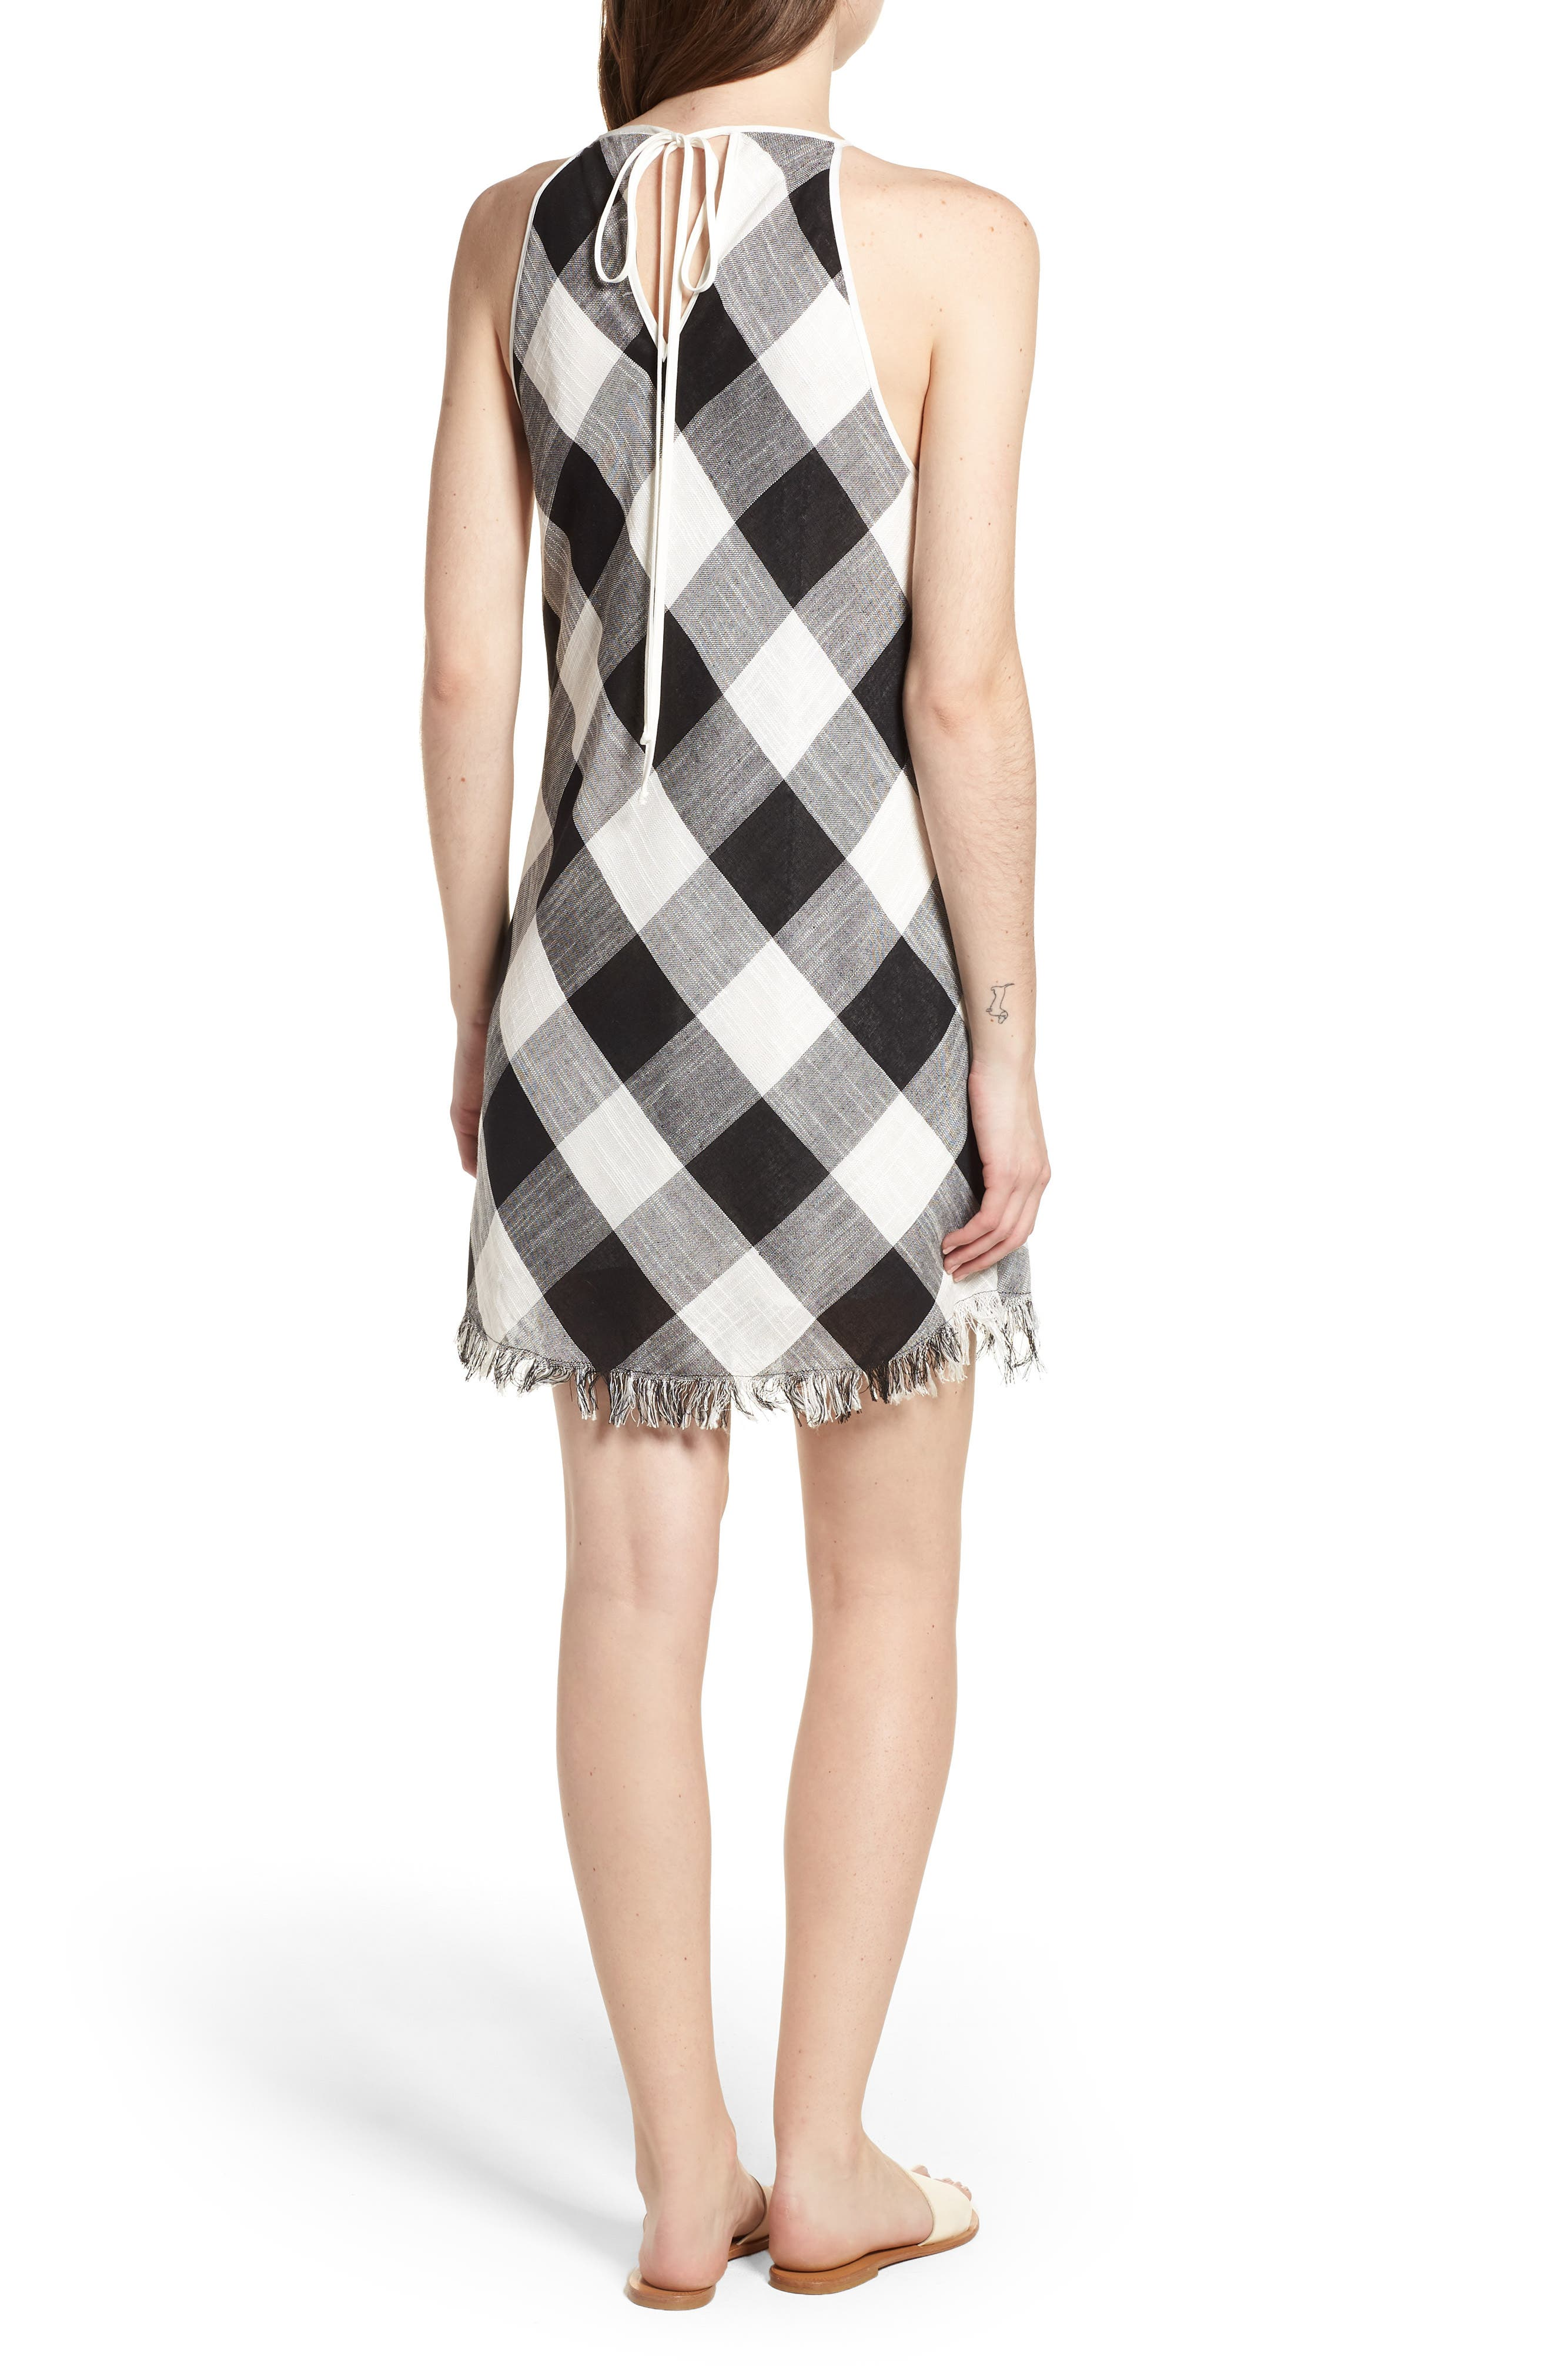 Bishop + Young Gingham Shift Dress,                             Alternate thumbnail 2, color,                             Assorted